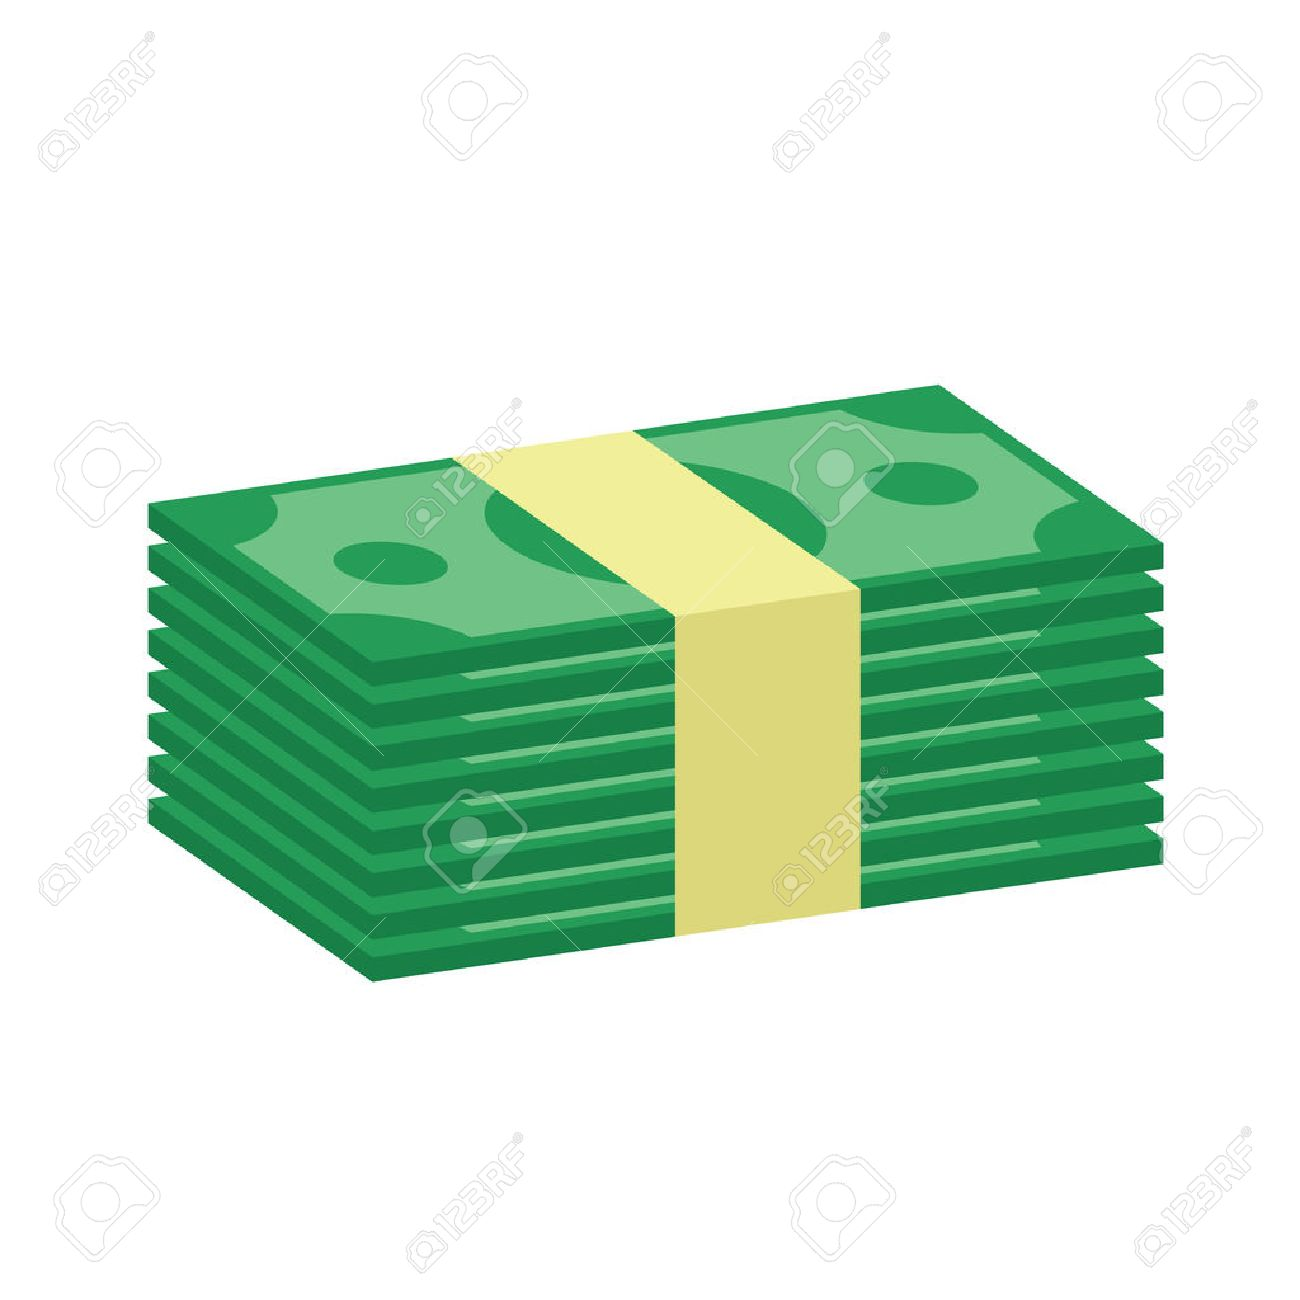 stack of money icon royalty free cliparts vectors and stock